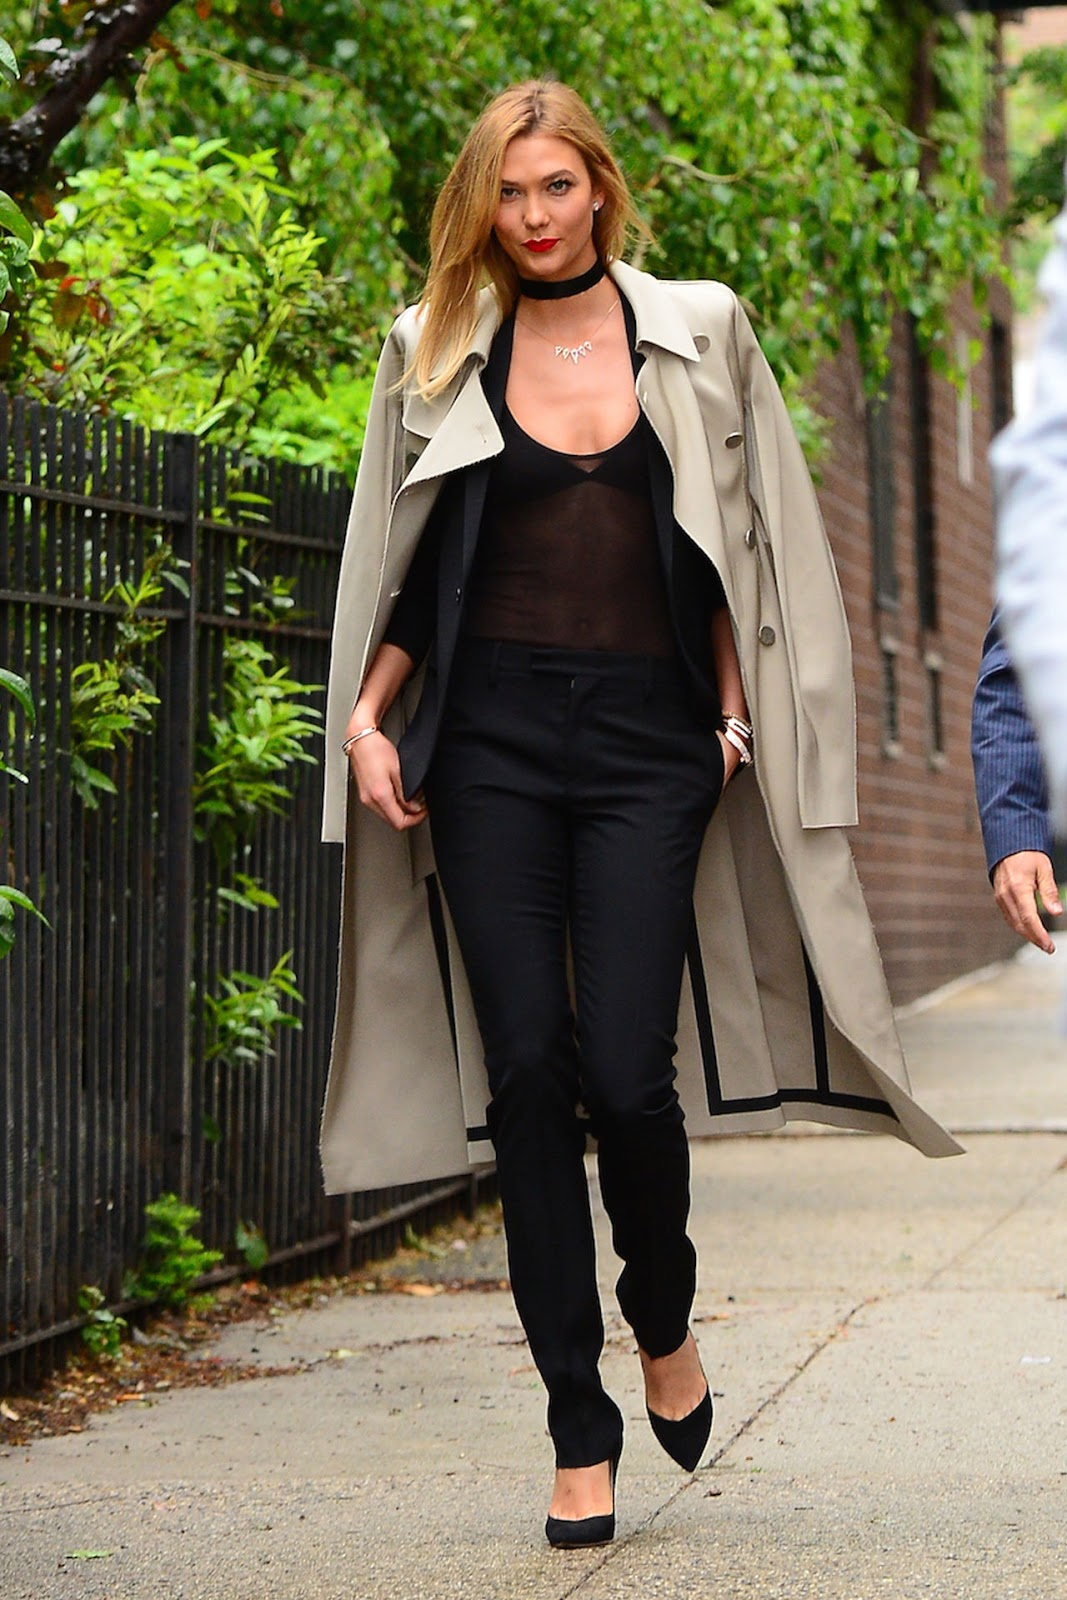 Karlie Kloss Wears a Sheer Tailored Look Out in NYC